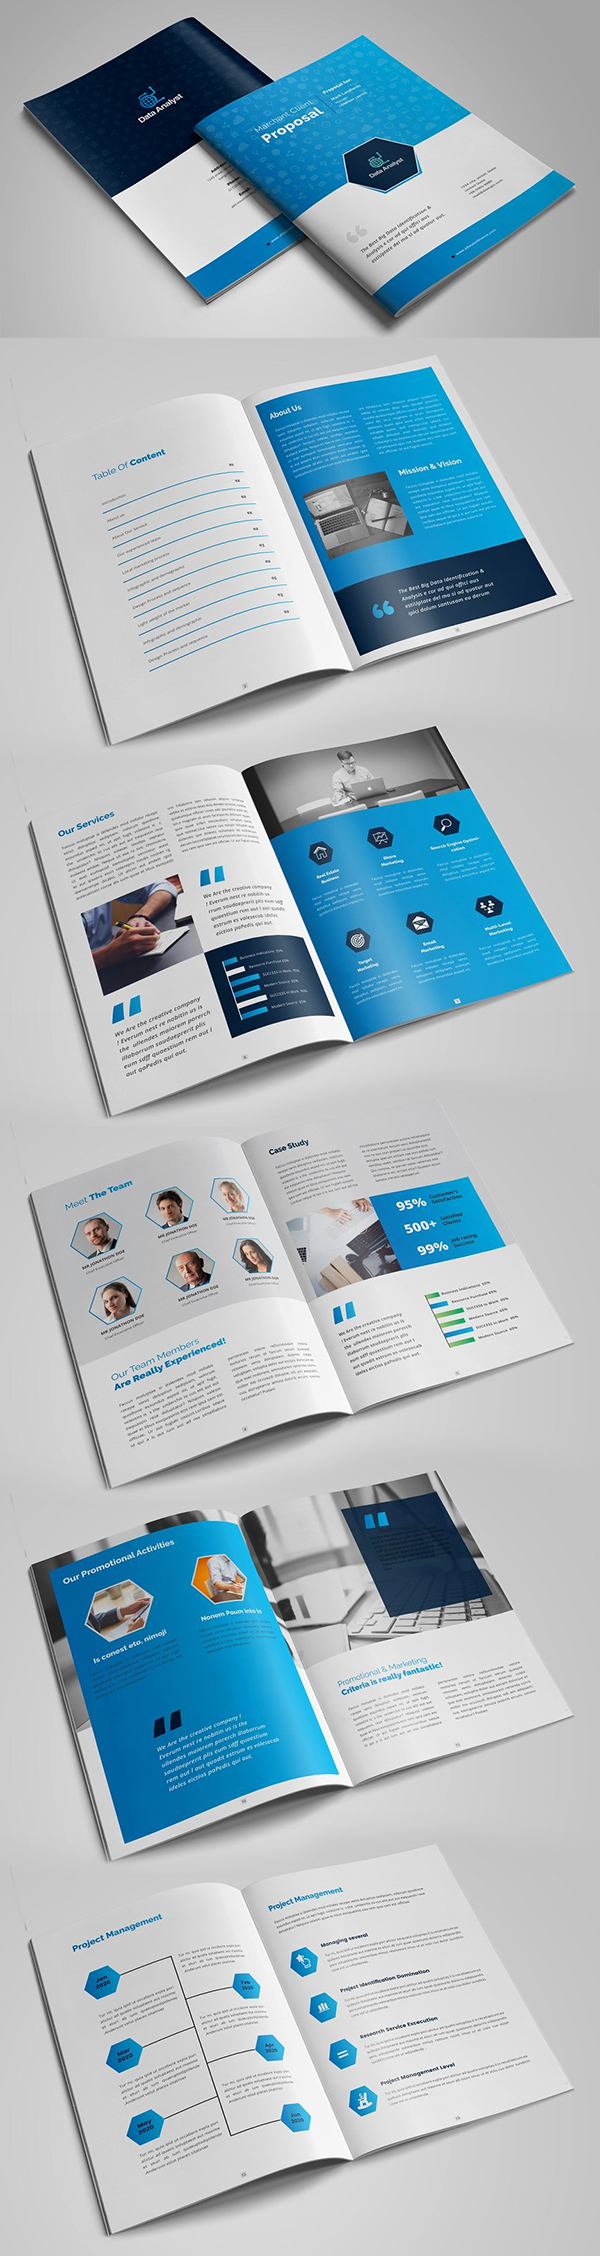 Business Project Proposal Design